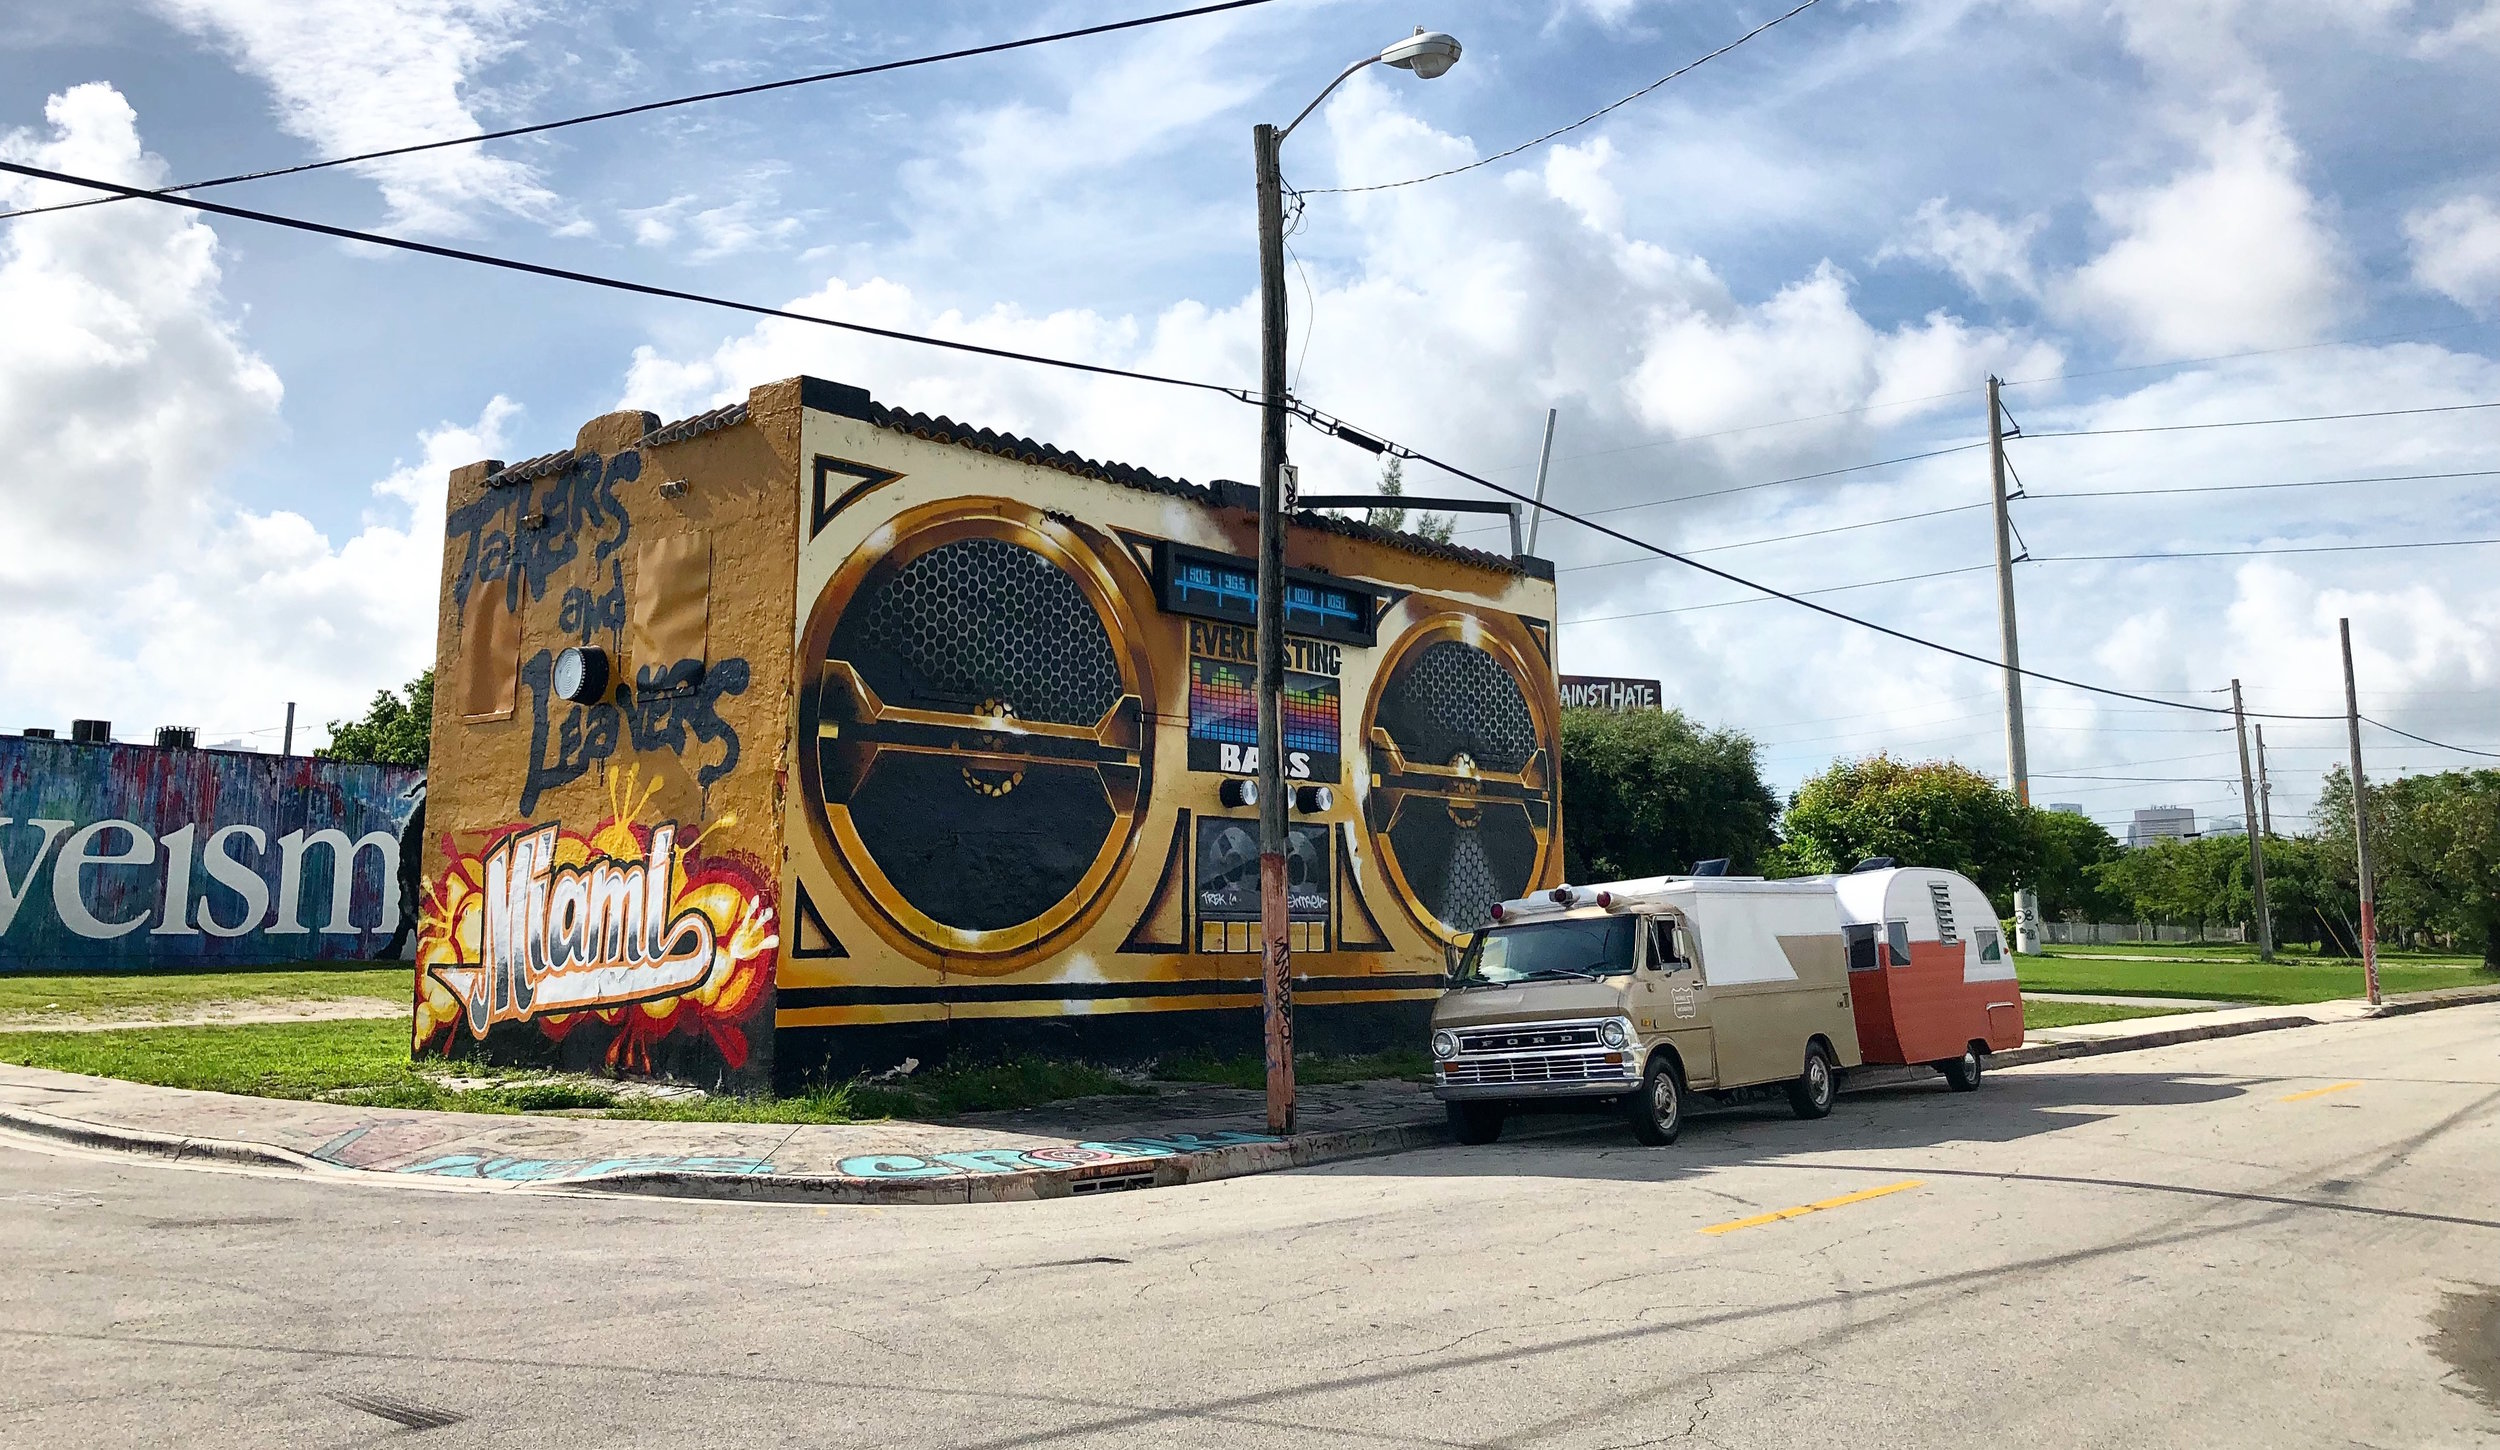 - So I drove down to Miami which has the best murals in the world right, most of them in the Wynwood neighborhood. You must have heard of Wynwood Walls. It's a mecca for muralists. Wynwood gets a new coat of paint on nearly every surface, as street artists from around the world come here to do commissions, compete for prizes, or just throw up pieces to get noticed. I was here for Art Basel 2017 and it was madness. So packed full of people that I couldn't get cell service because every street was a mob of selfies being uploaded.In this podcast we take a look at Wynwood and what's different because of the murals. People are here snapping selfies, property values are going up, but how do you value and make a living when your work is publicly accessible? Who pays for that?